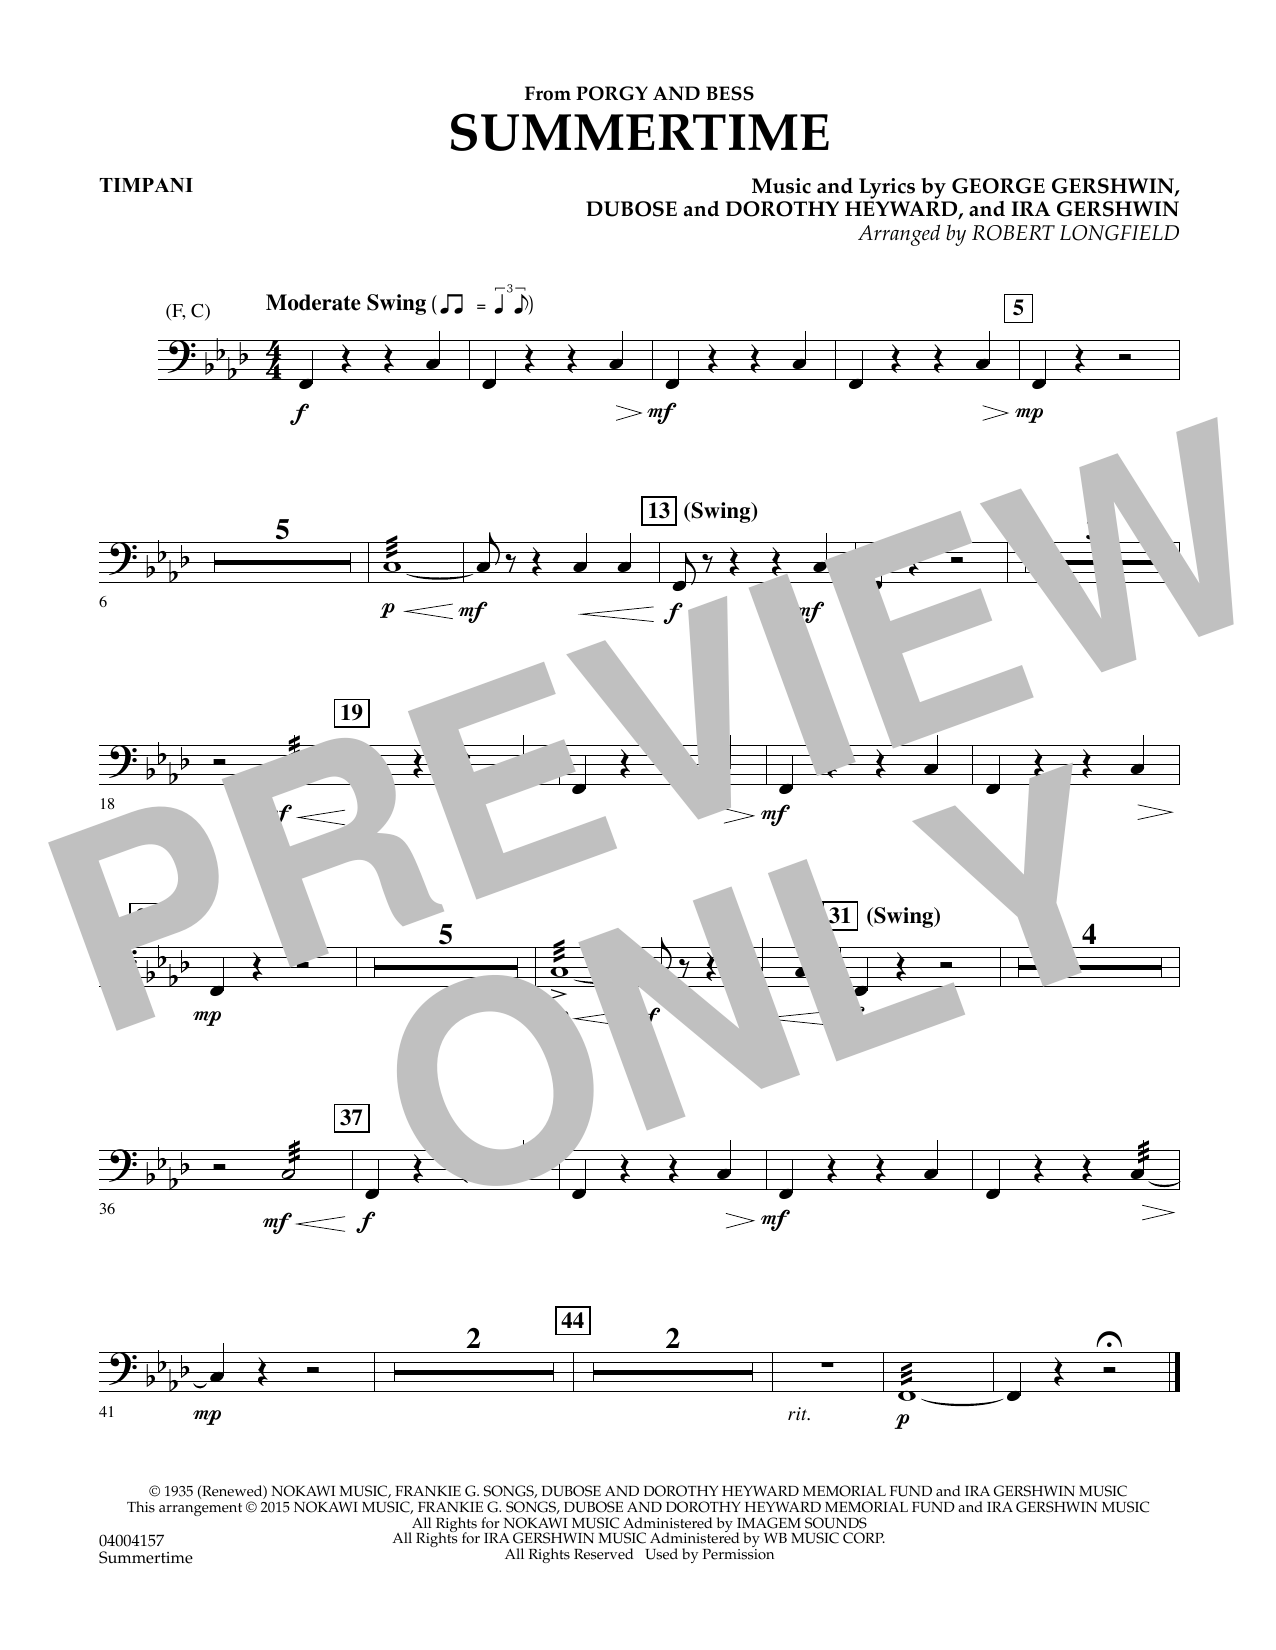 Summertime (from Porgy and Bess) - Timpani (Concert Band)